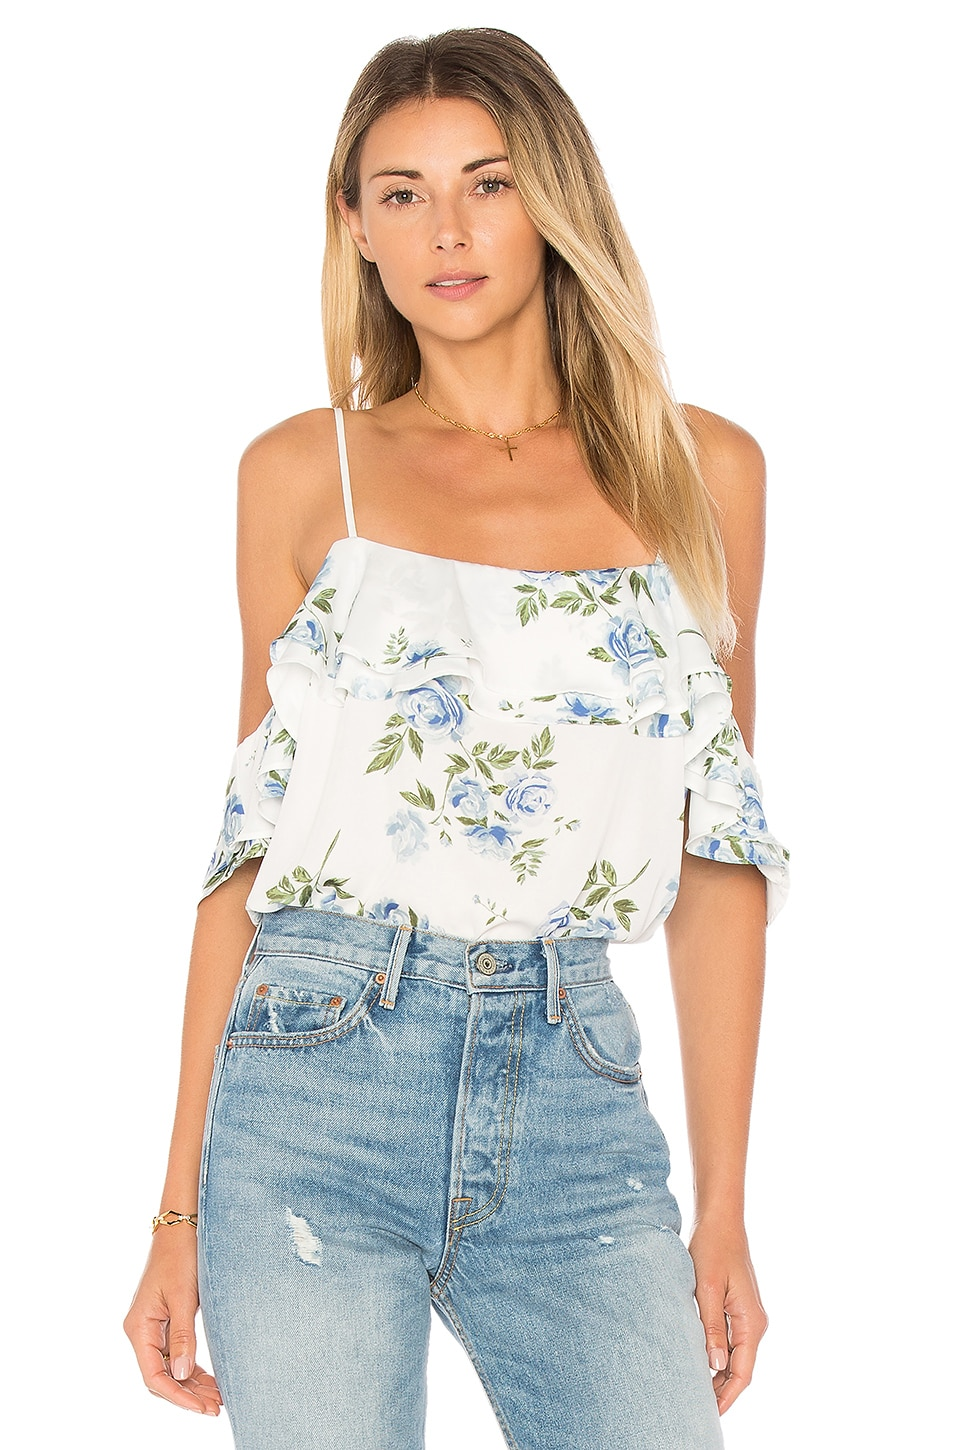 L'Academie The Off Shoulder Bodysuit in Blue Floral